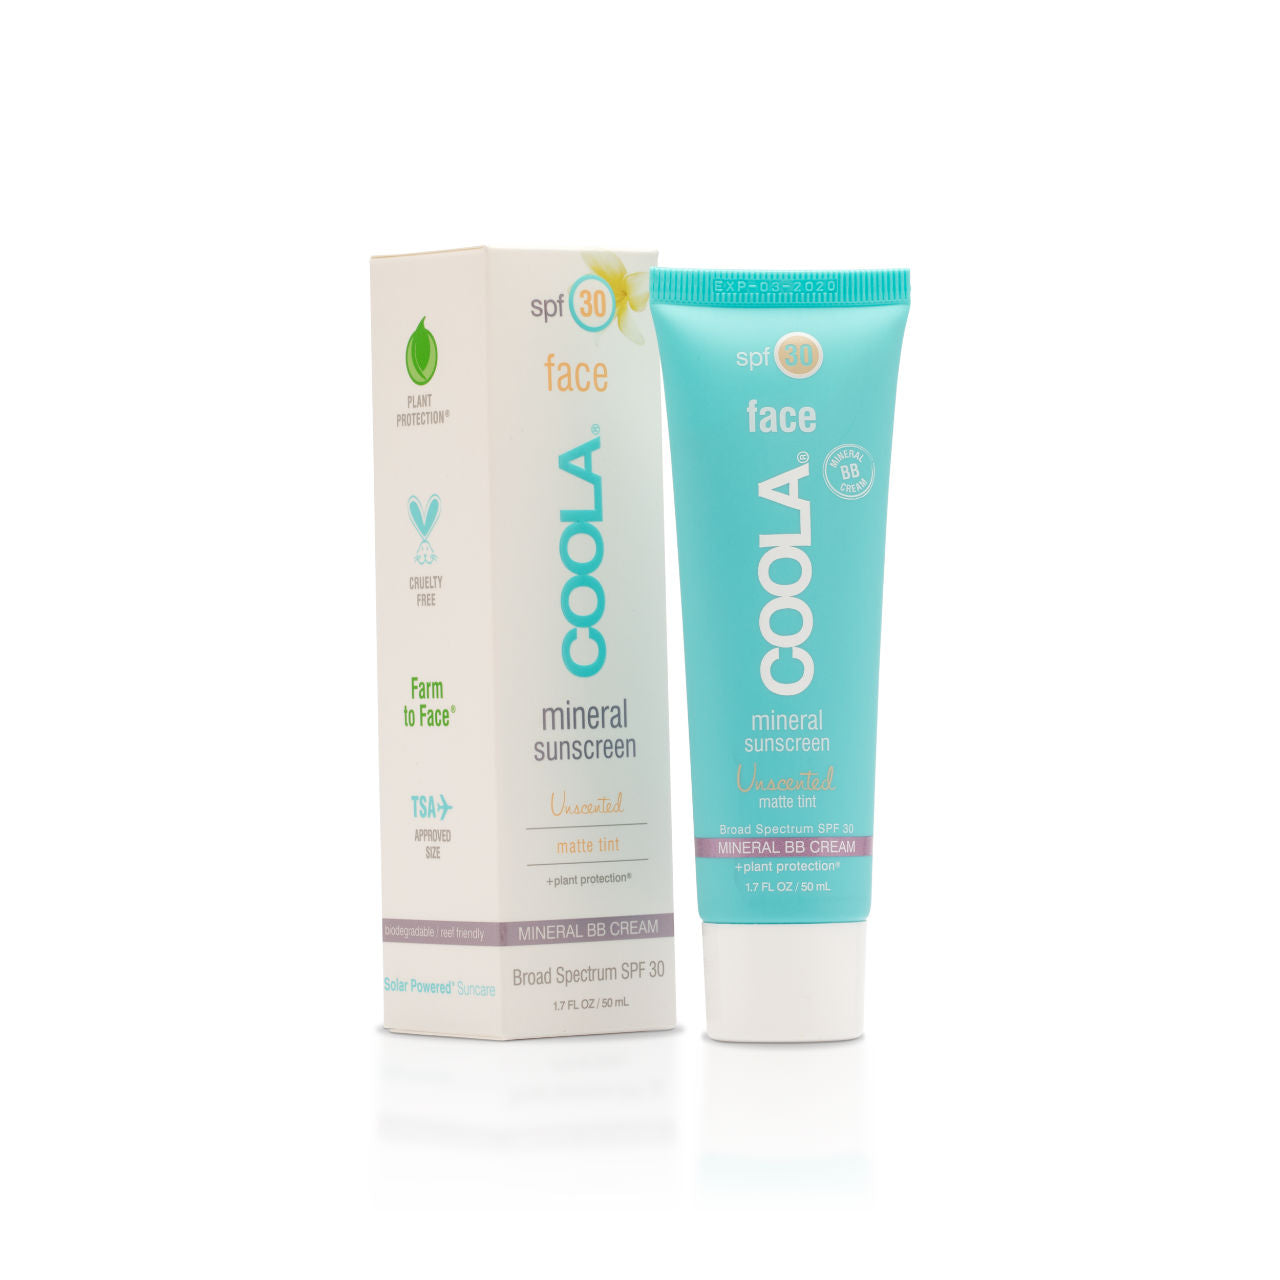 COOLA Mineral Face SPF30 Unscented Matte Tint